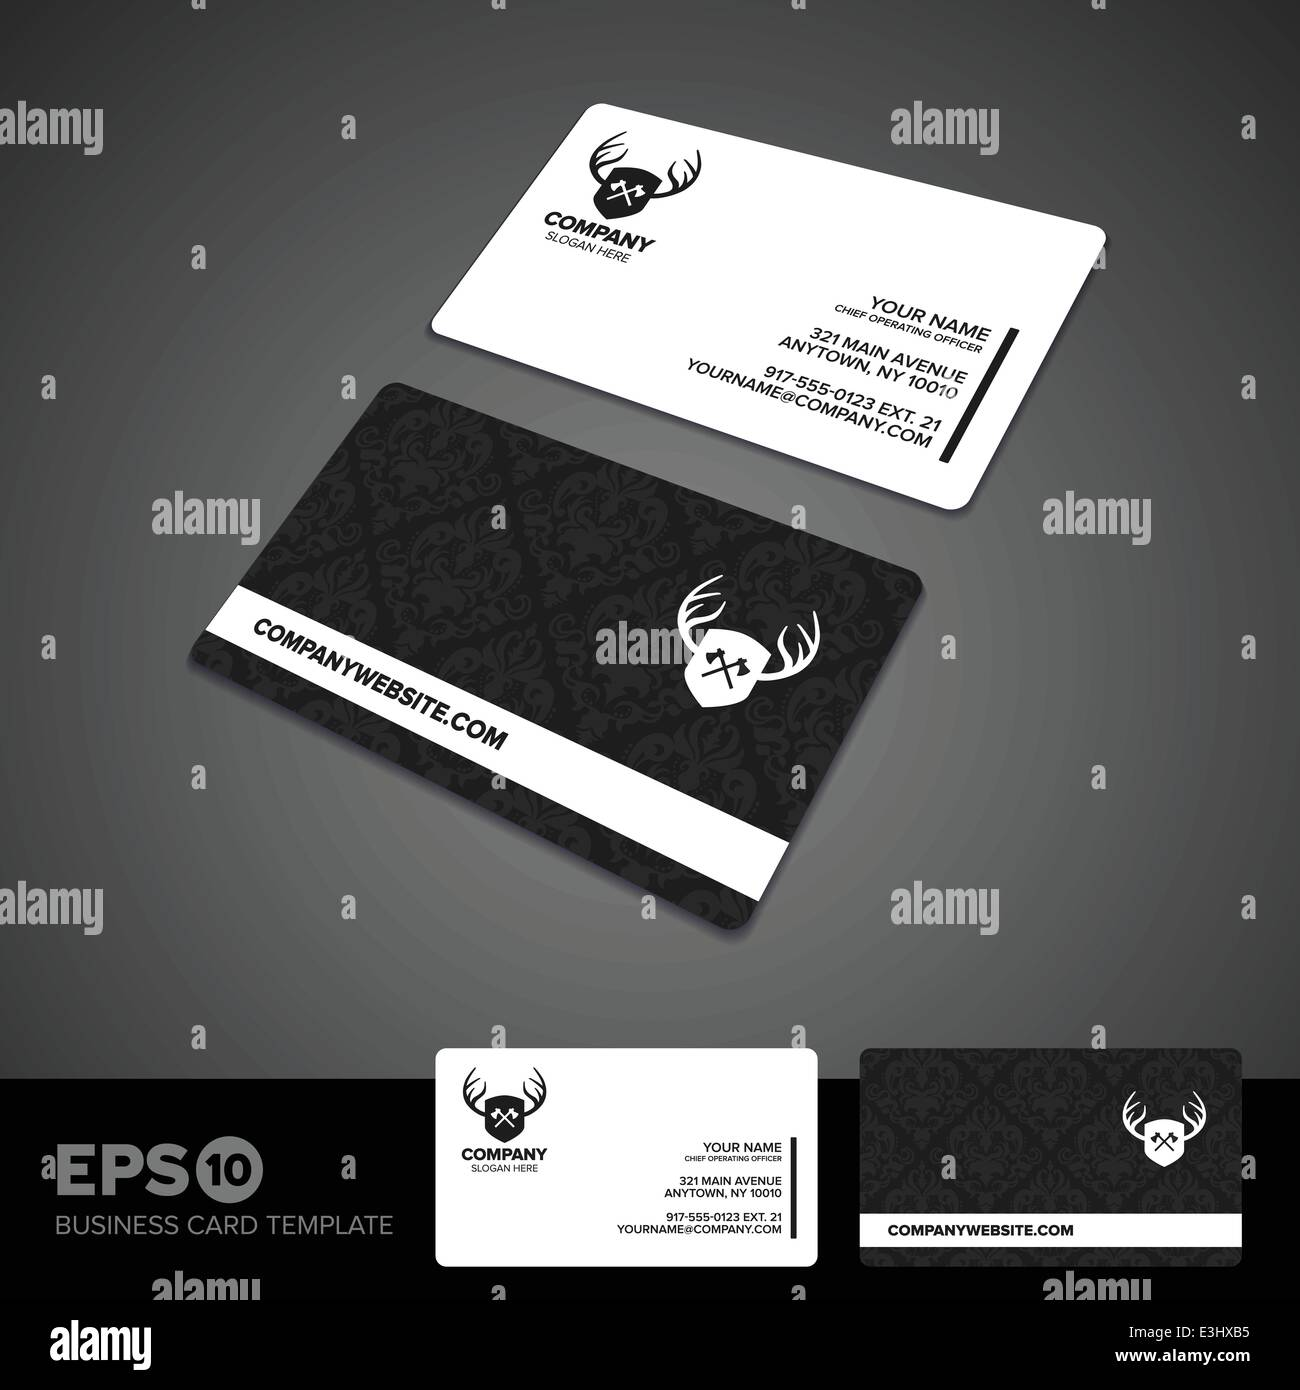 Rounded corner black white business card template stock vector art rounded corner black white business card template fbccfo Images